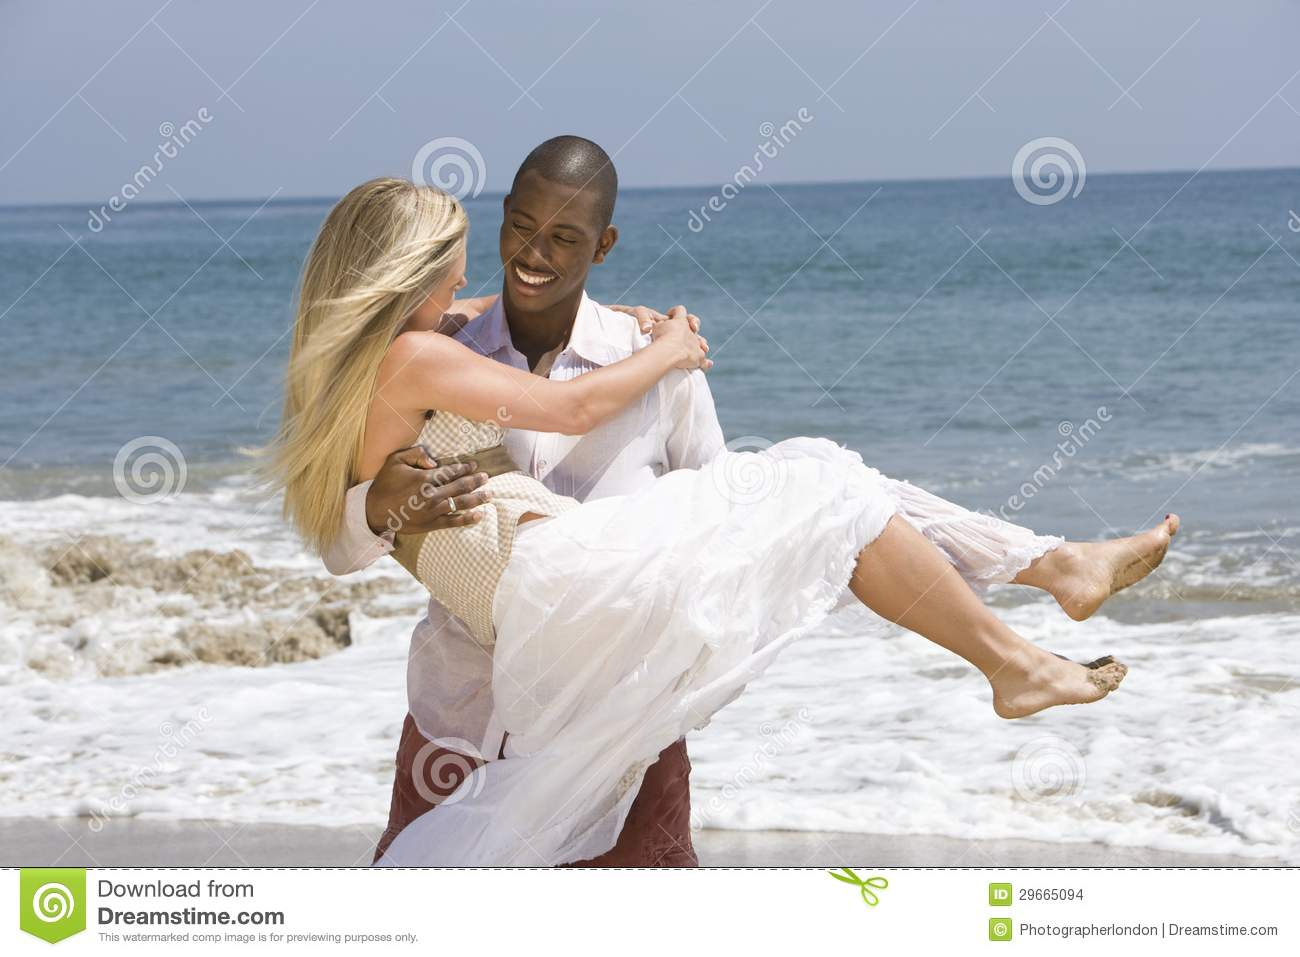 Man Carrying Woman at Beach